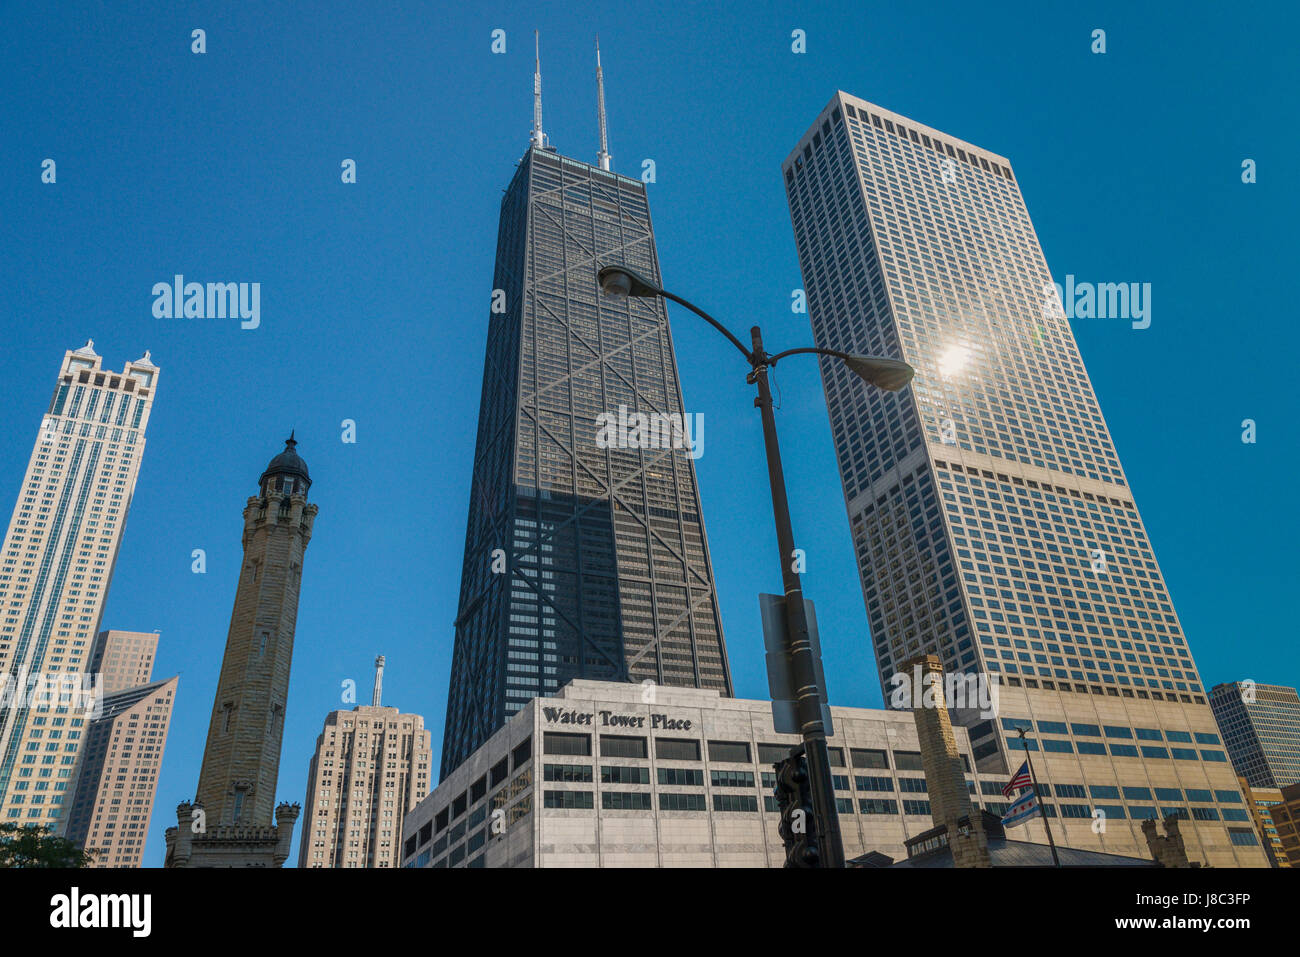 Skyscrapers and Street views around Michigan Avenue Chicago USA - Stock Image